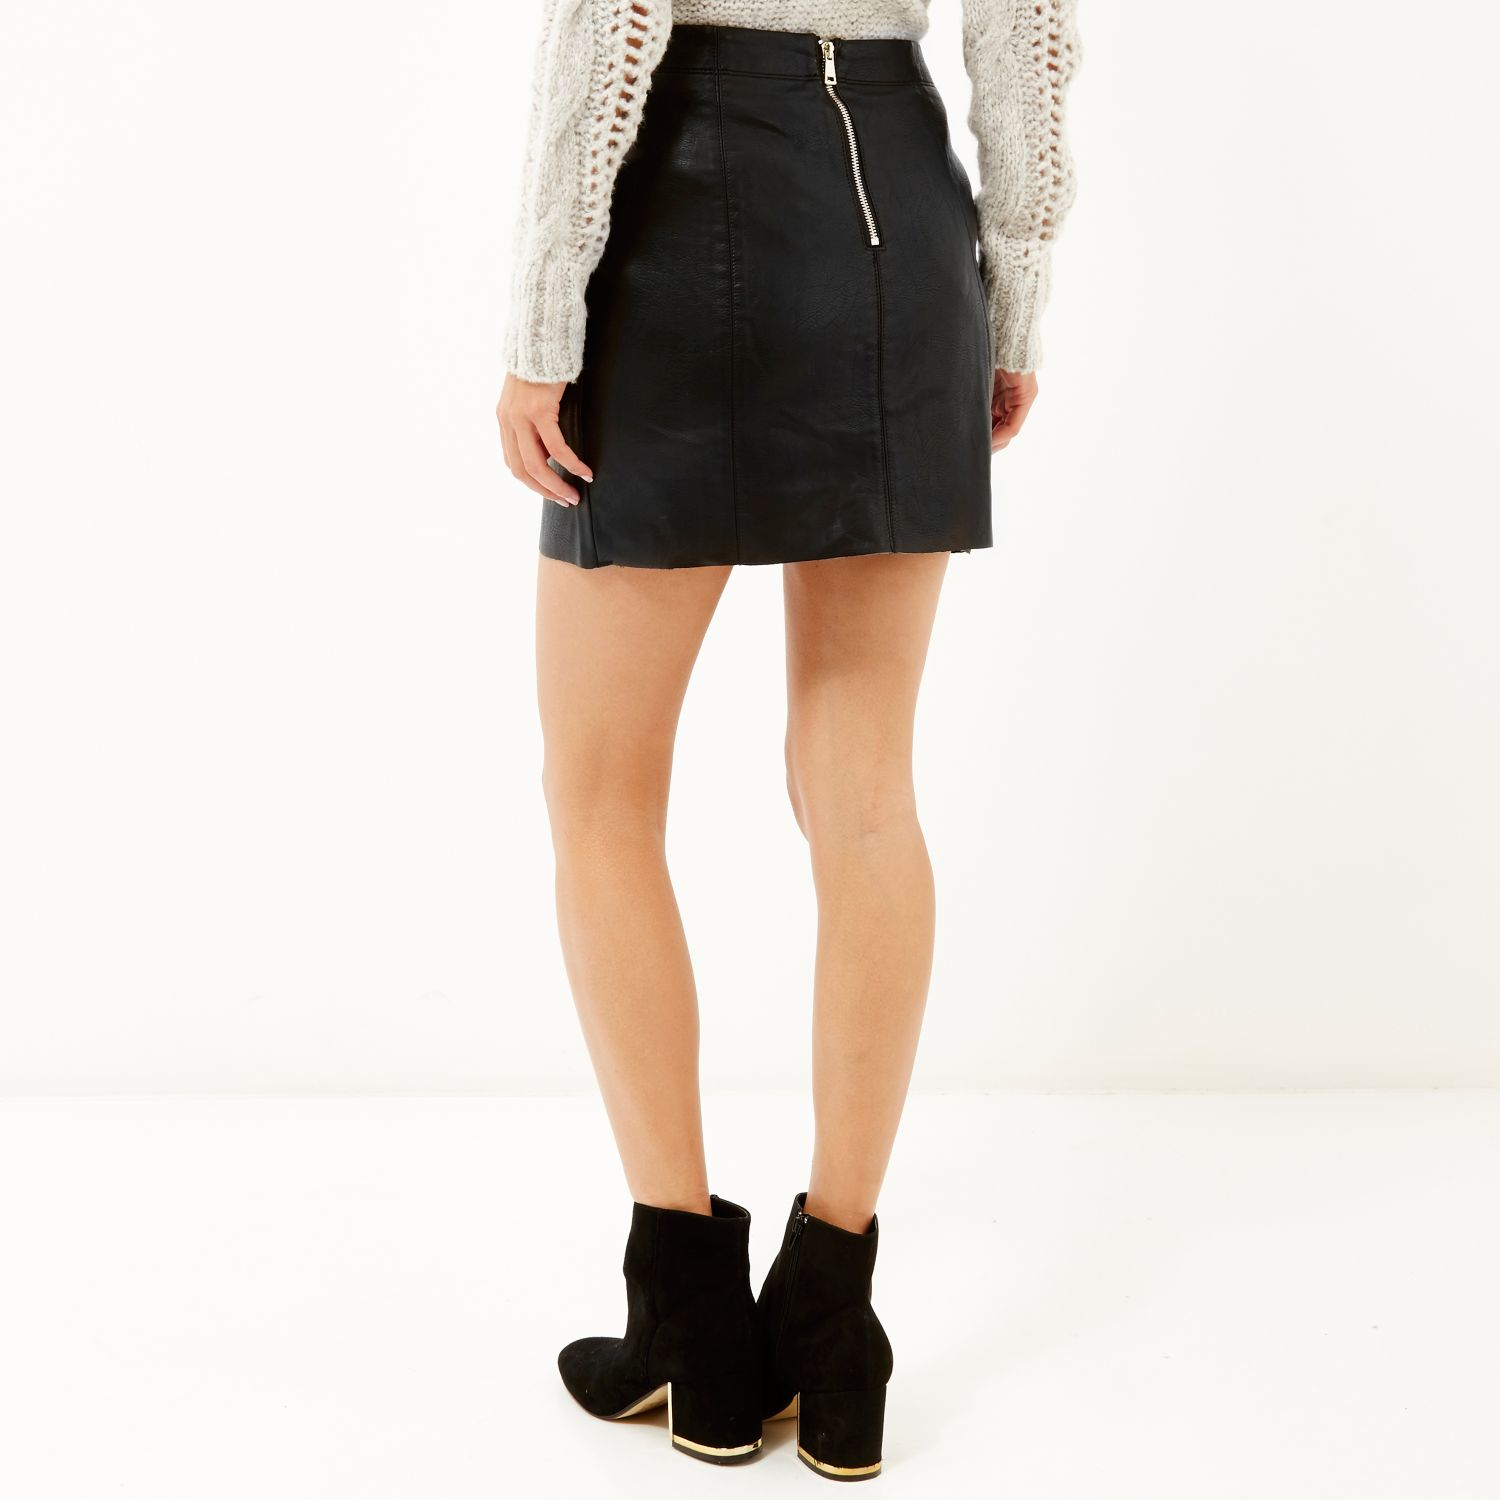 7fe1179b09 River Island Lace And Leather Look Mini Skirt